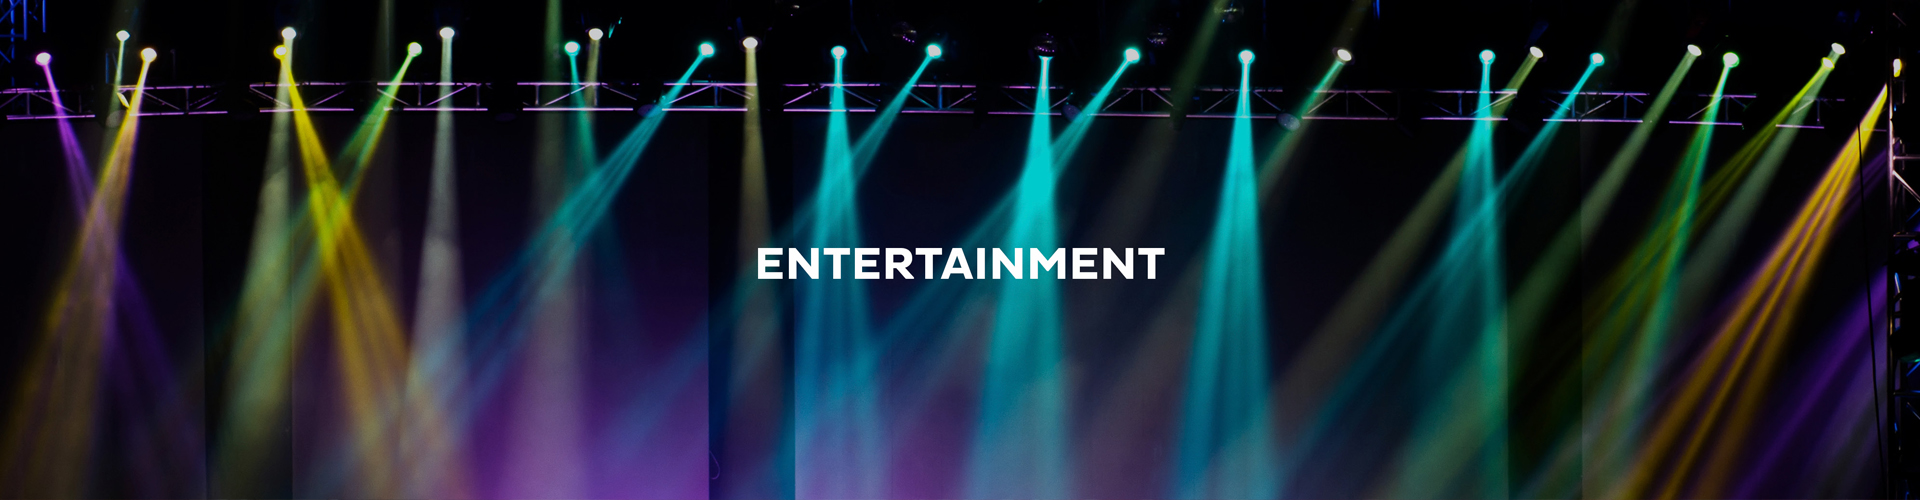 Entertainment-final-resized